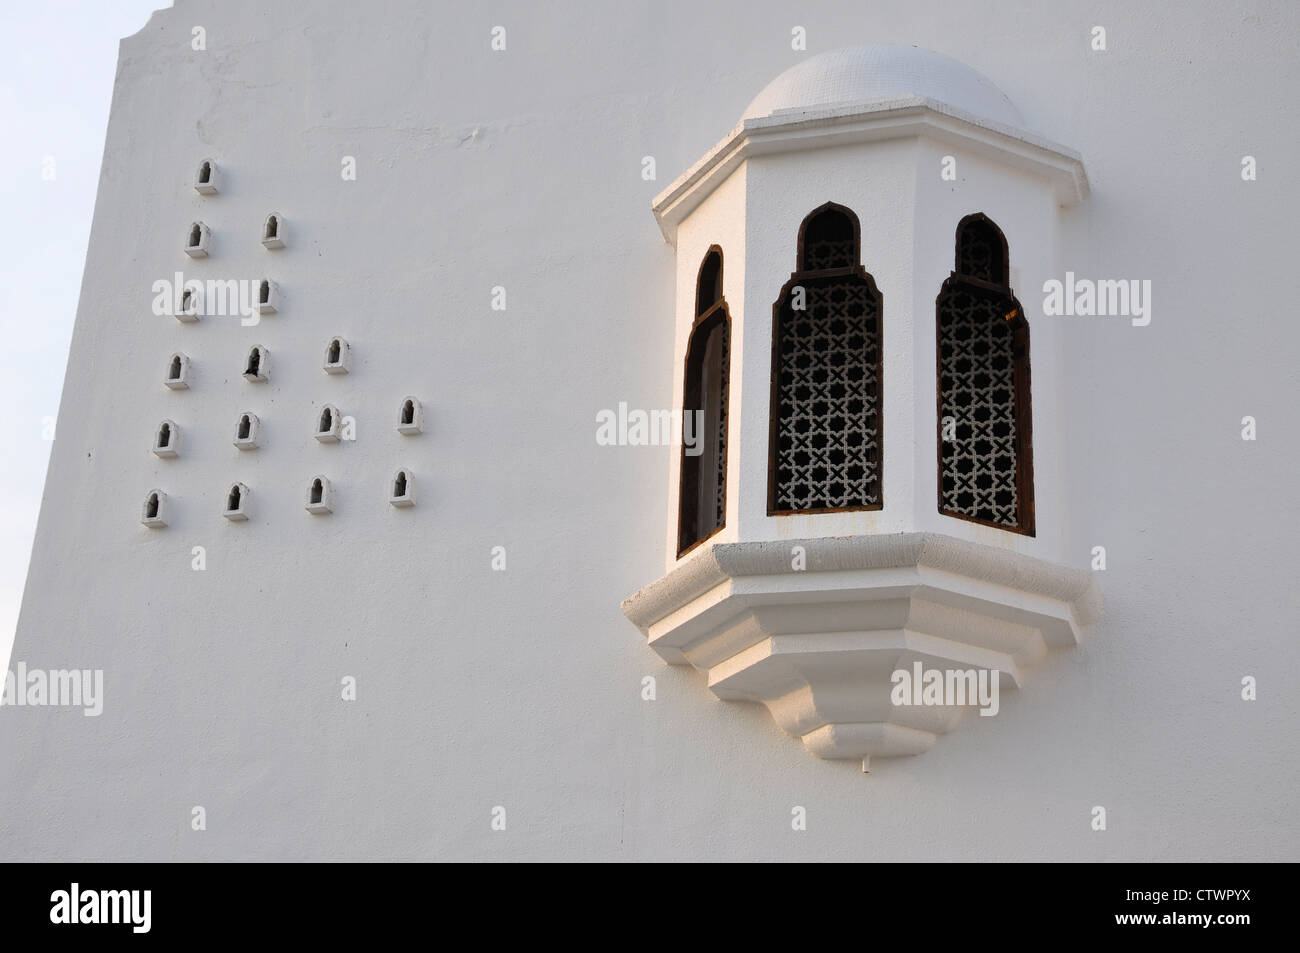 Bay window and ventilation holes allow aeration function occurs in the interior of buildings. - Stock Image